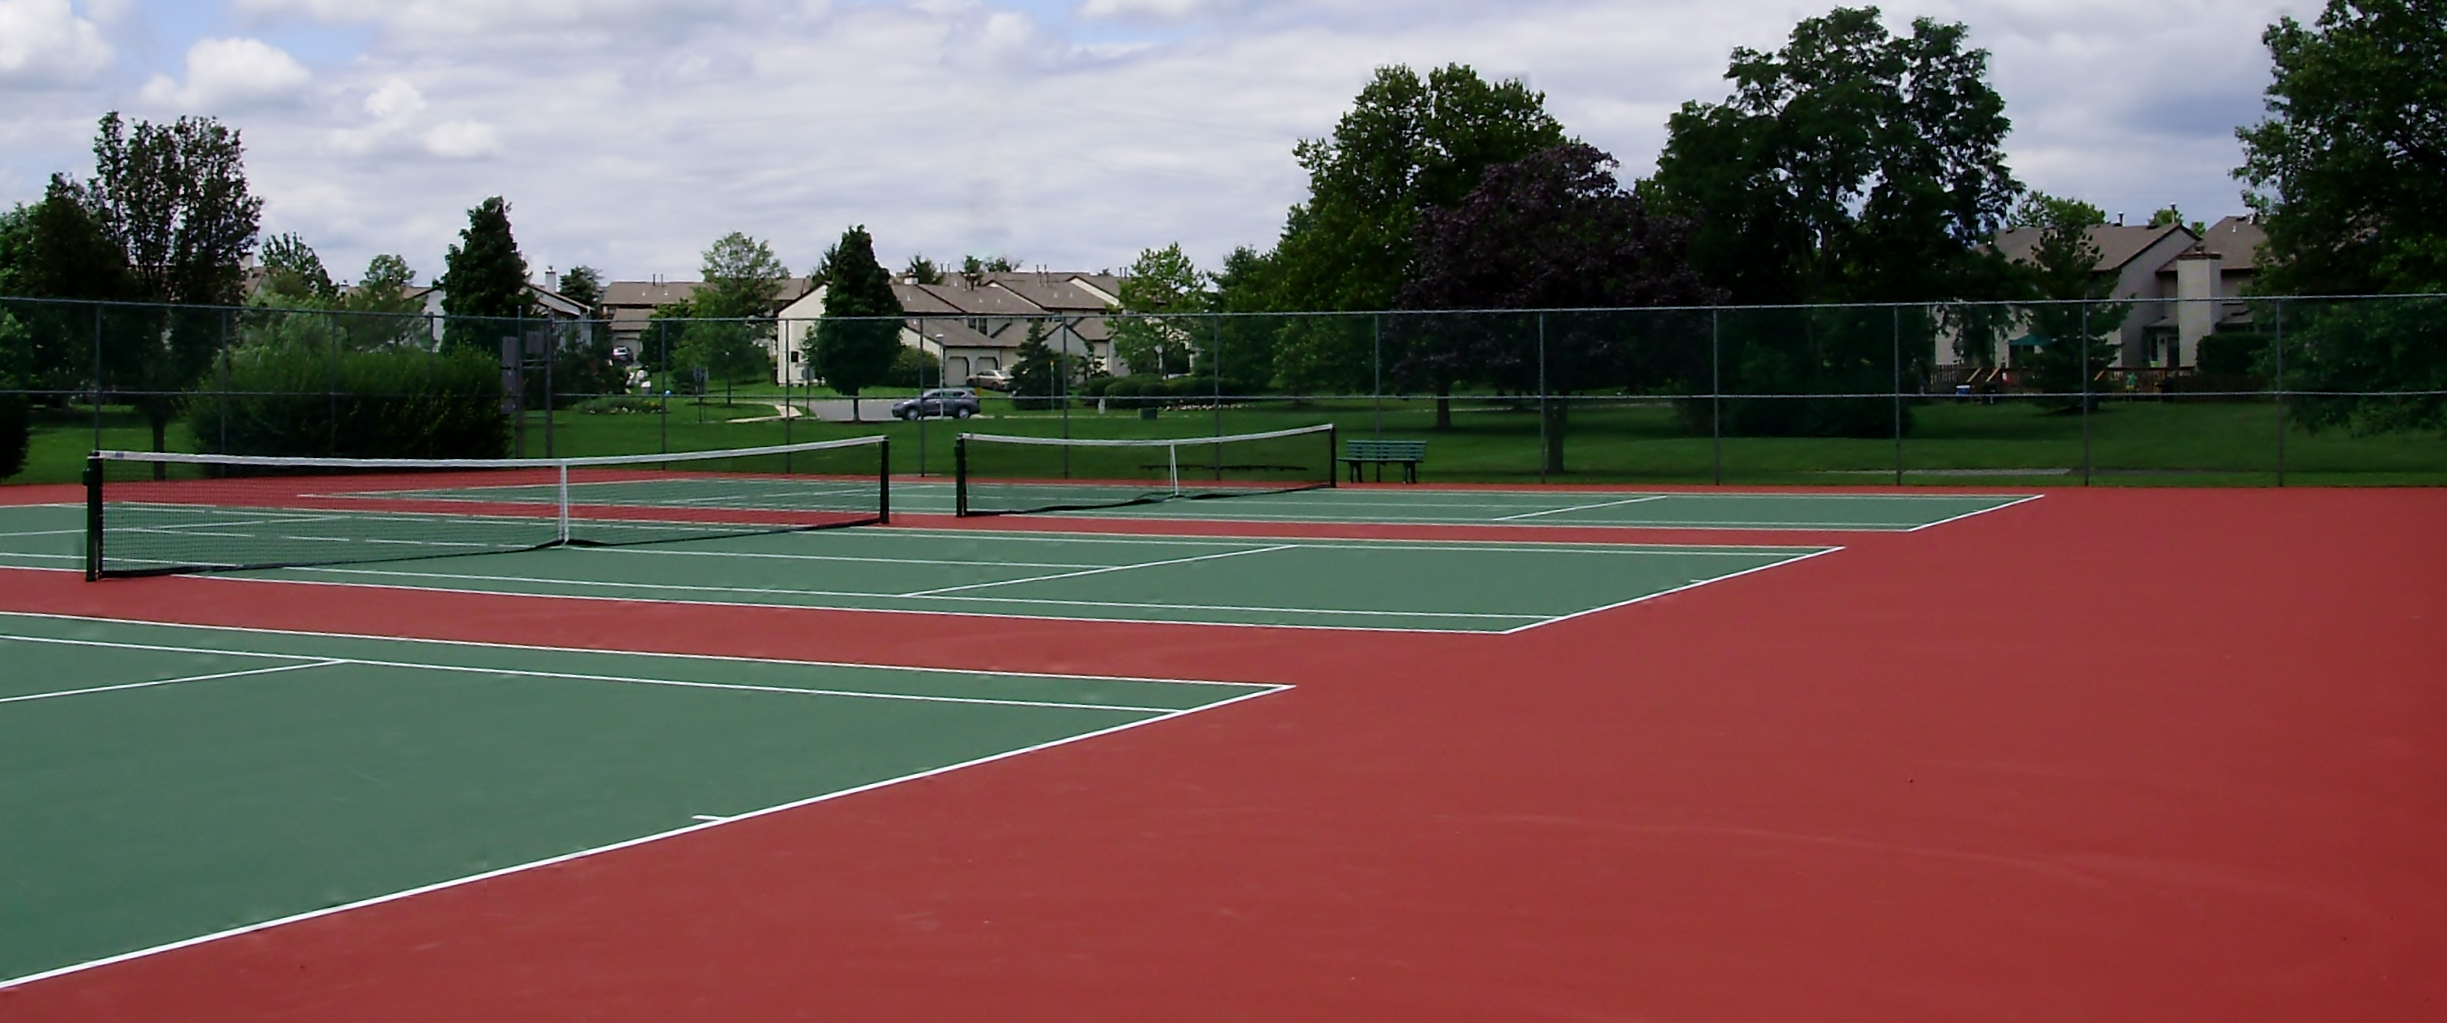 Sun Ridge Tennis Courts